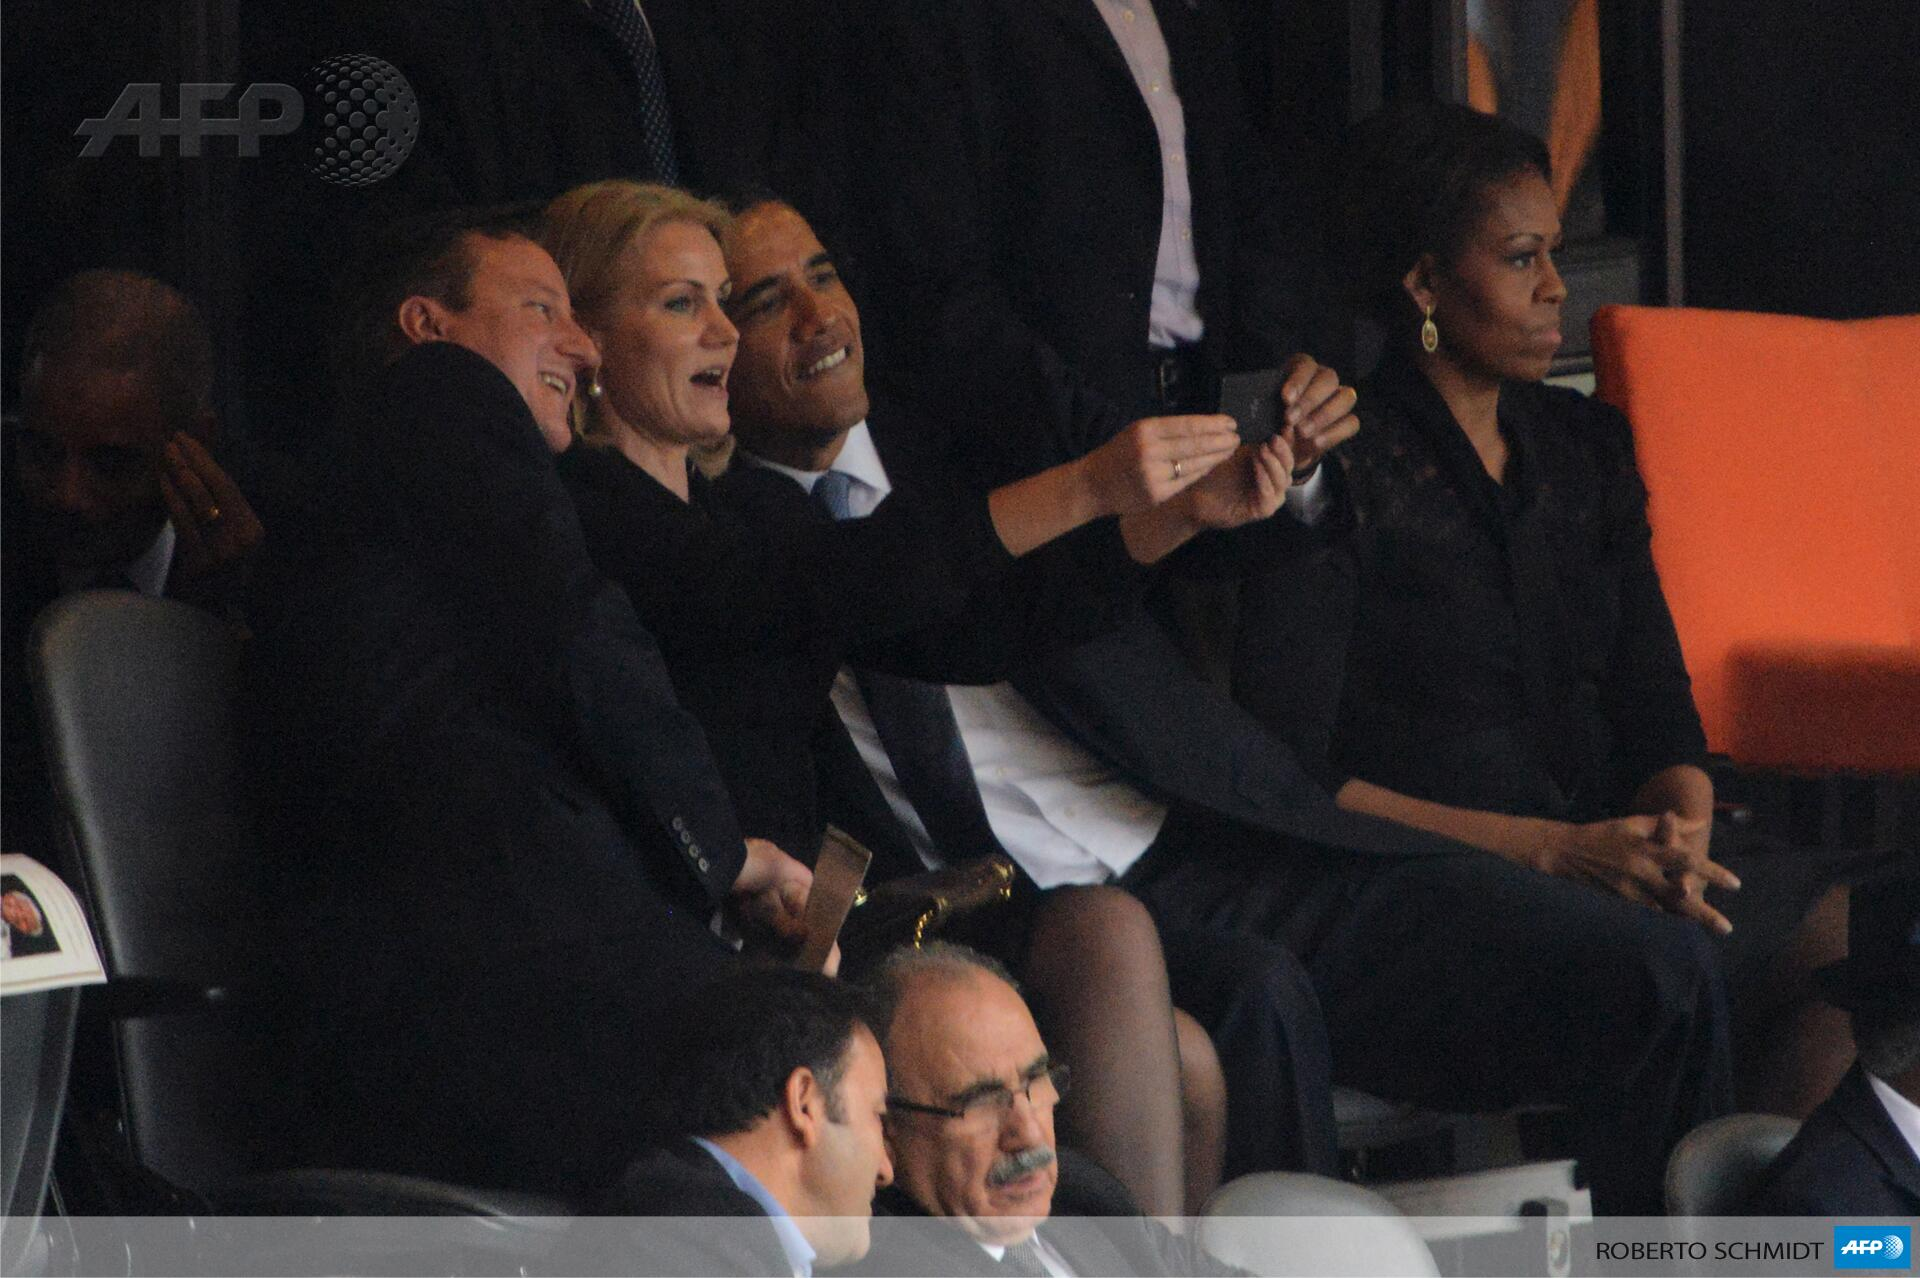 Selfie for British PM David Cameron, Danish PM Helle Thorning Schmidt & Barack Obama #MandelaMemorial http://t.co/pkFxGhF9cf. It's playtime!